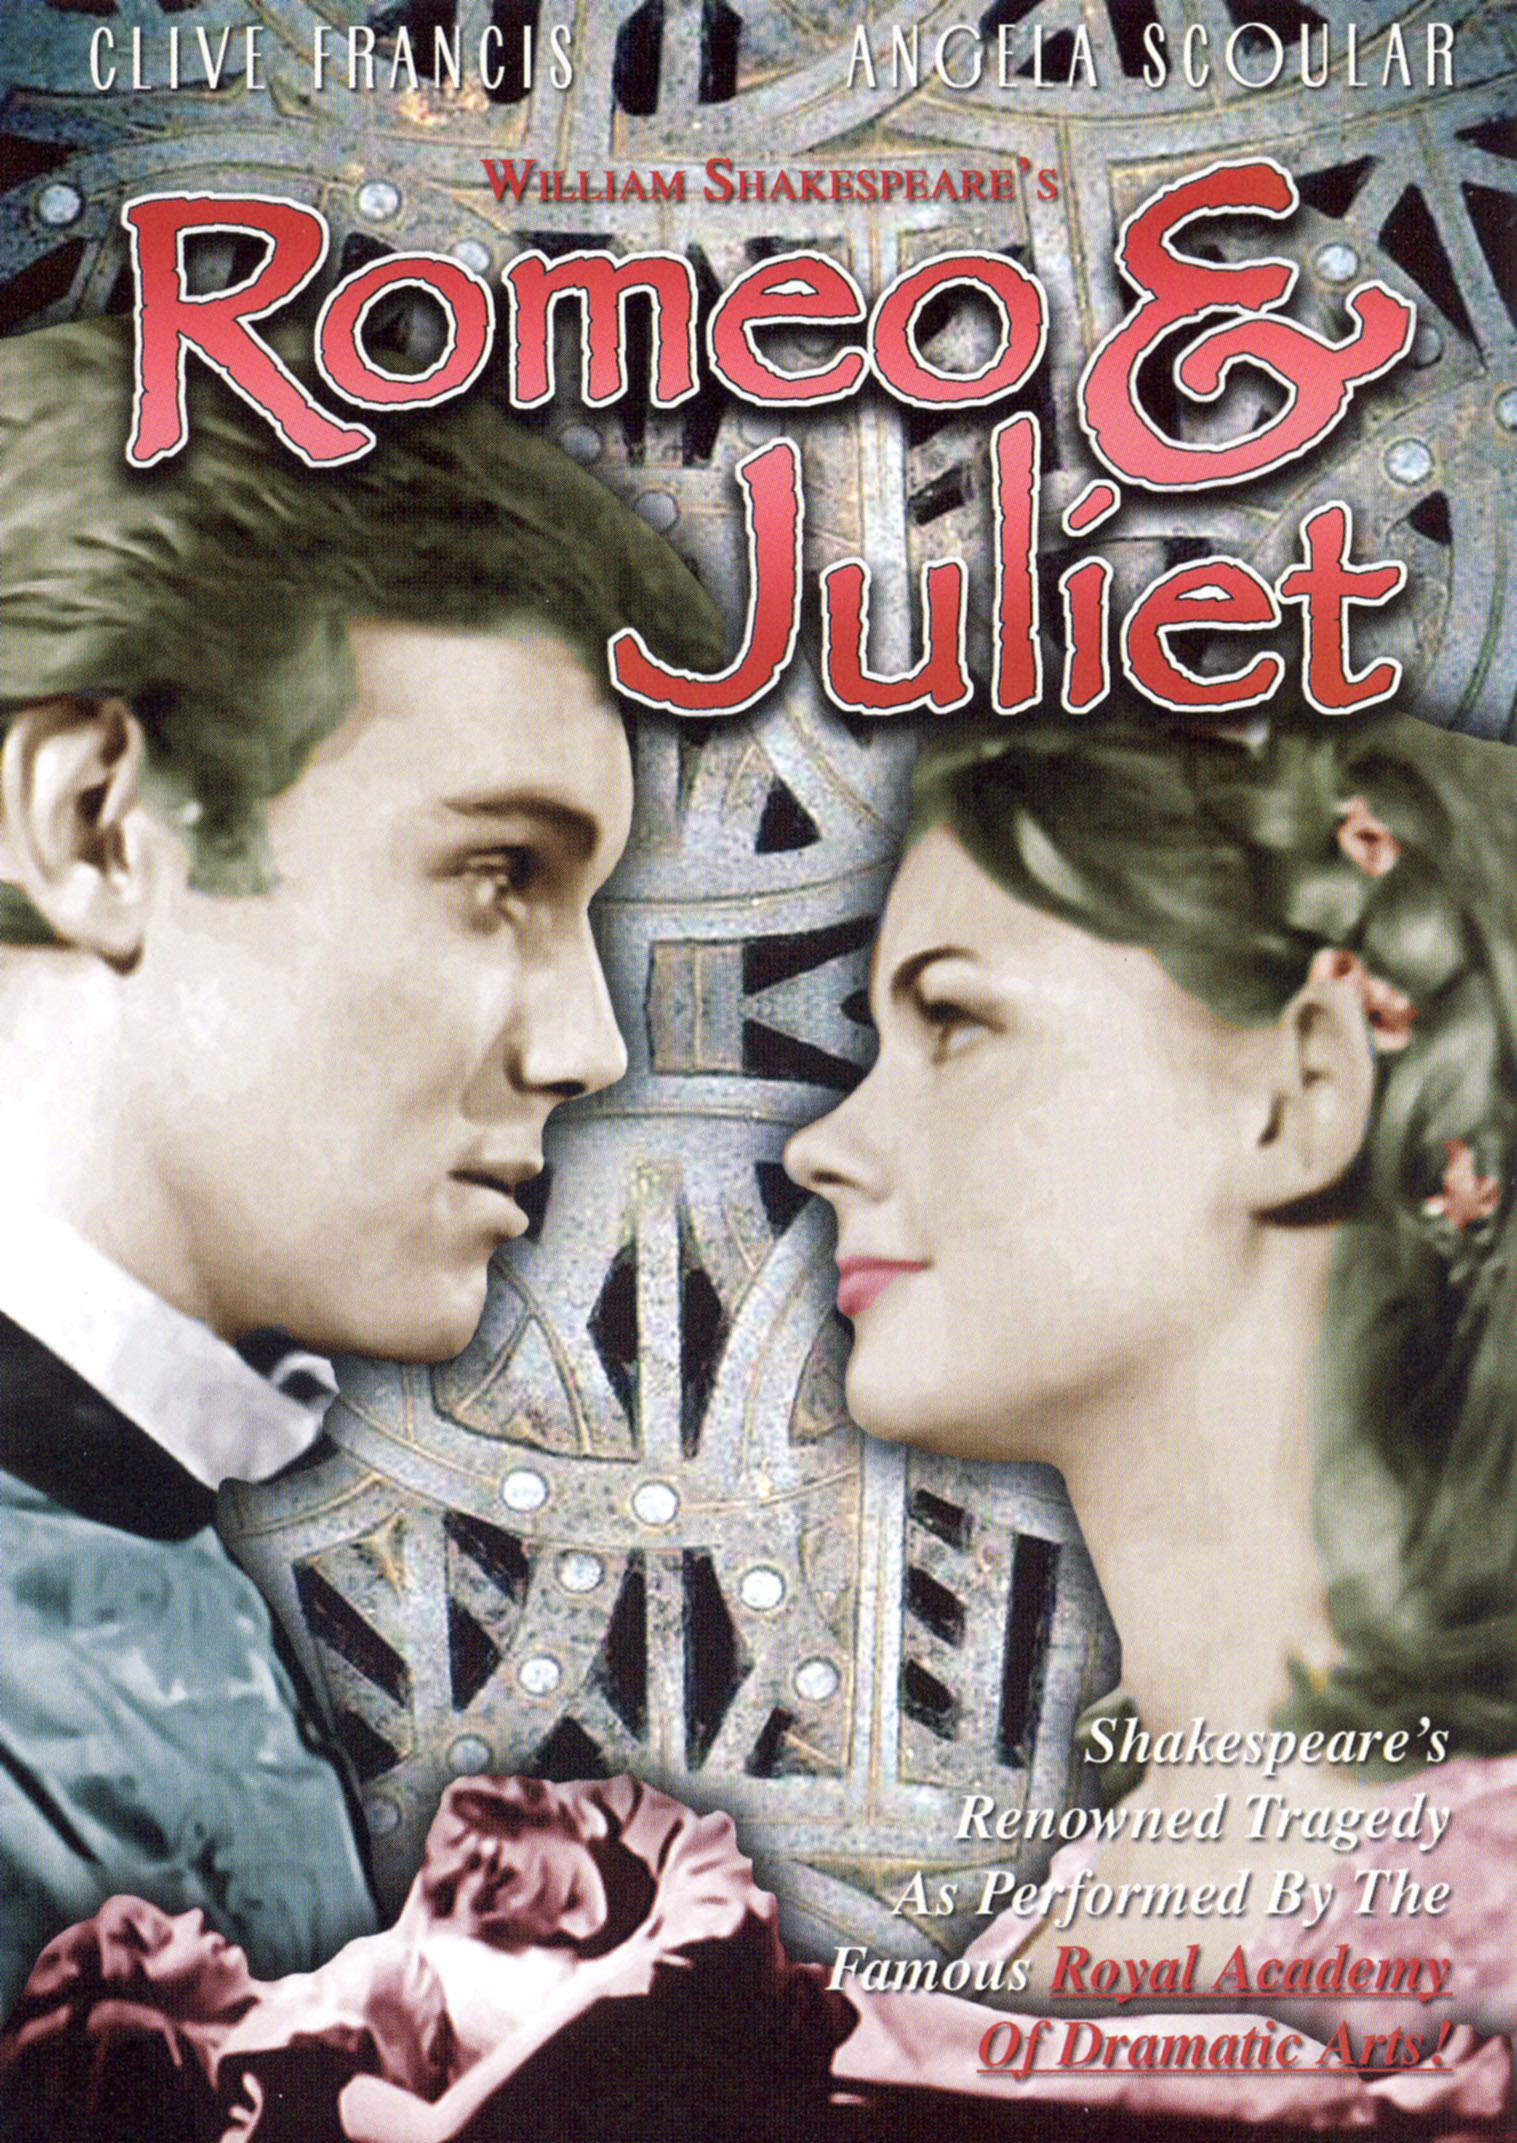 romeo and juliet and medea Helen causes a war for fleeing with paris just like in romeo and juliet, where juliet's beauty causes both romeo and paris to die shakespeare used this allusion to demonstrate the love romeo felt for rosalind and the trouble it caused him.